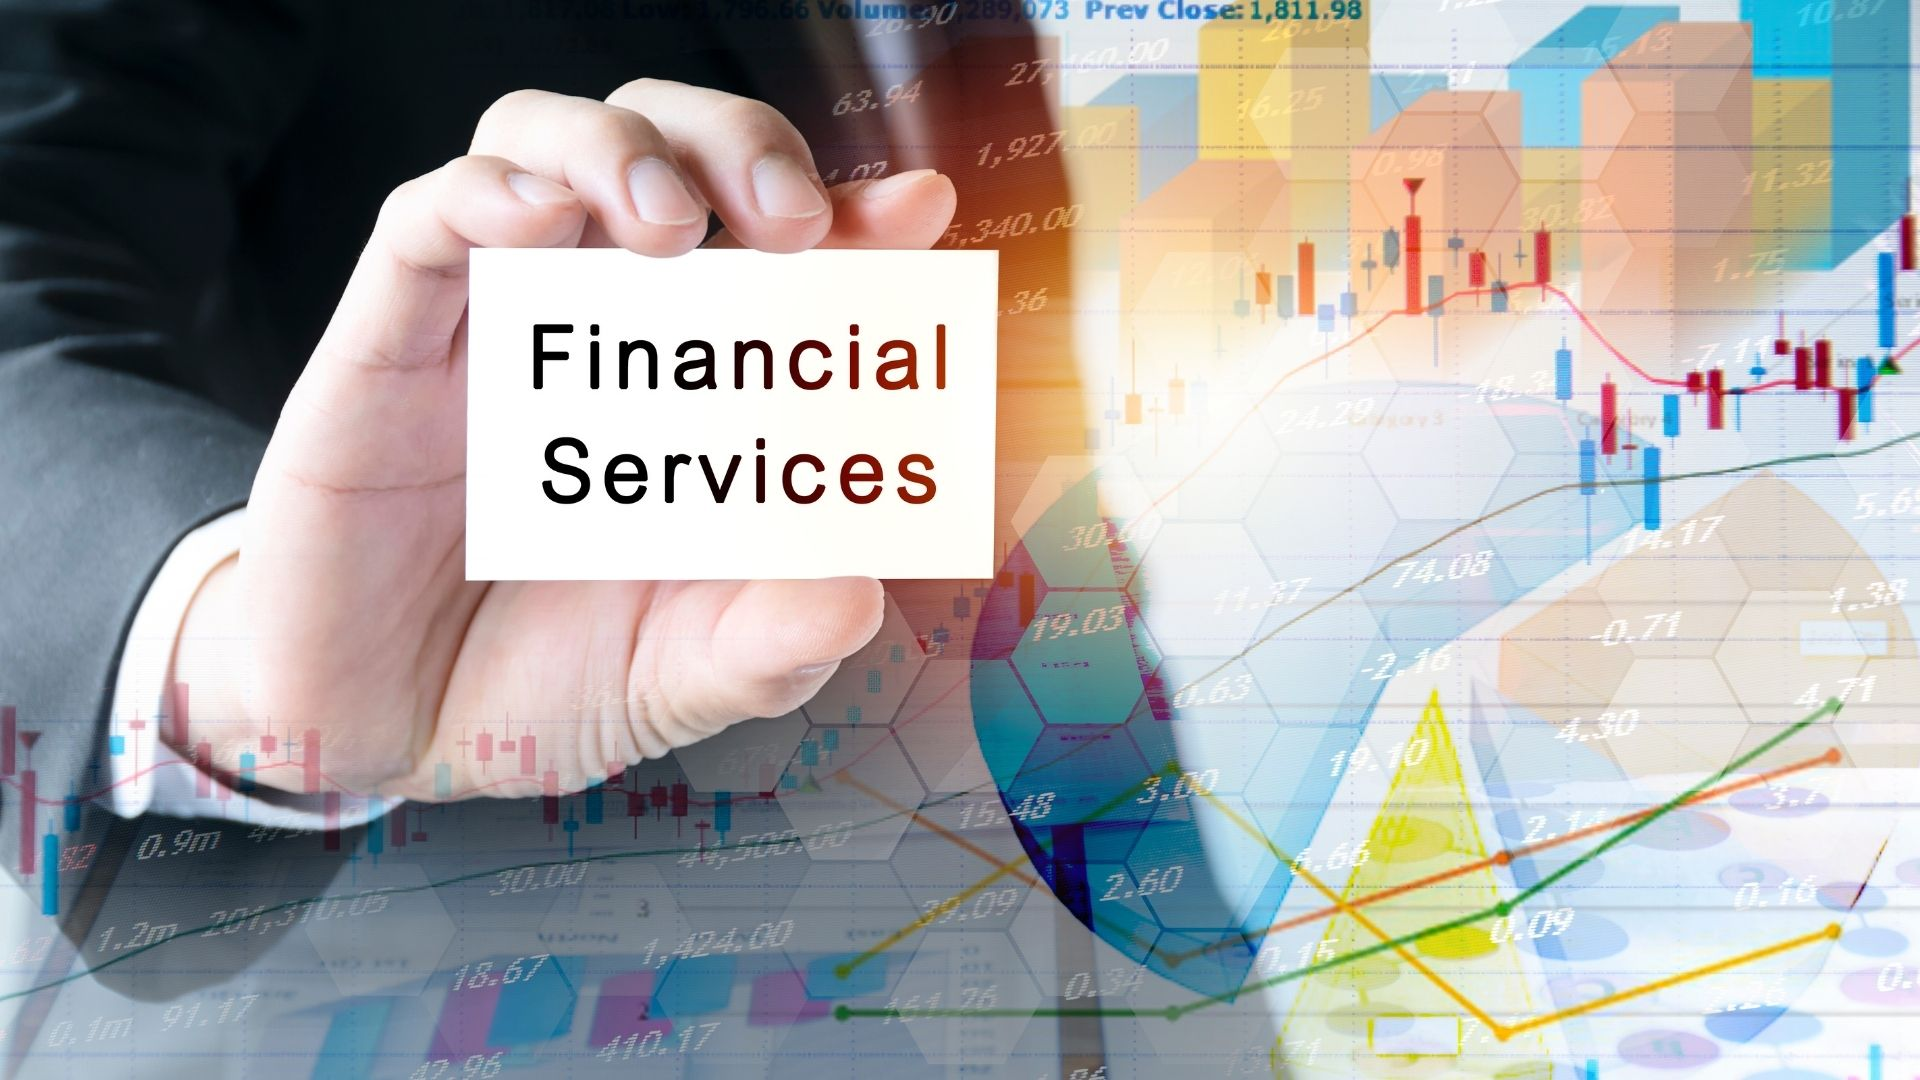 How the financial services industry can solve the issue of vulnerable code 38